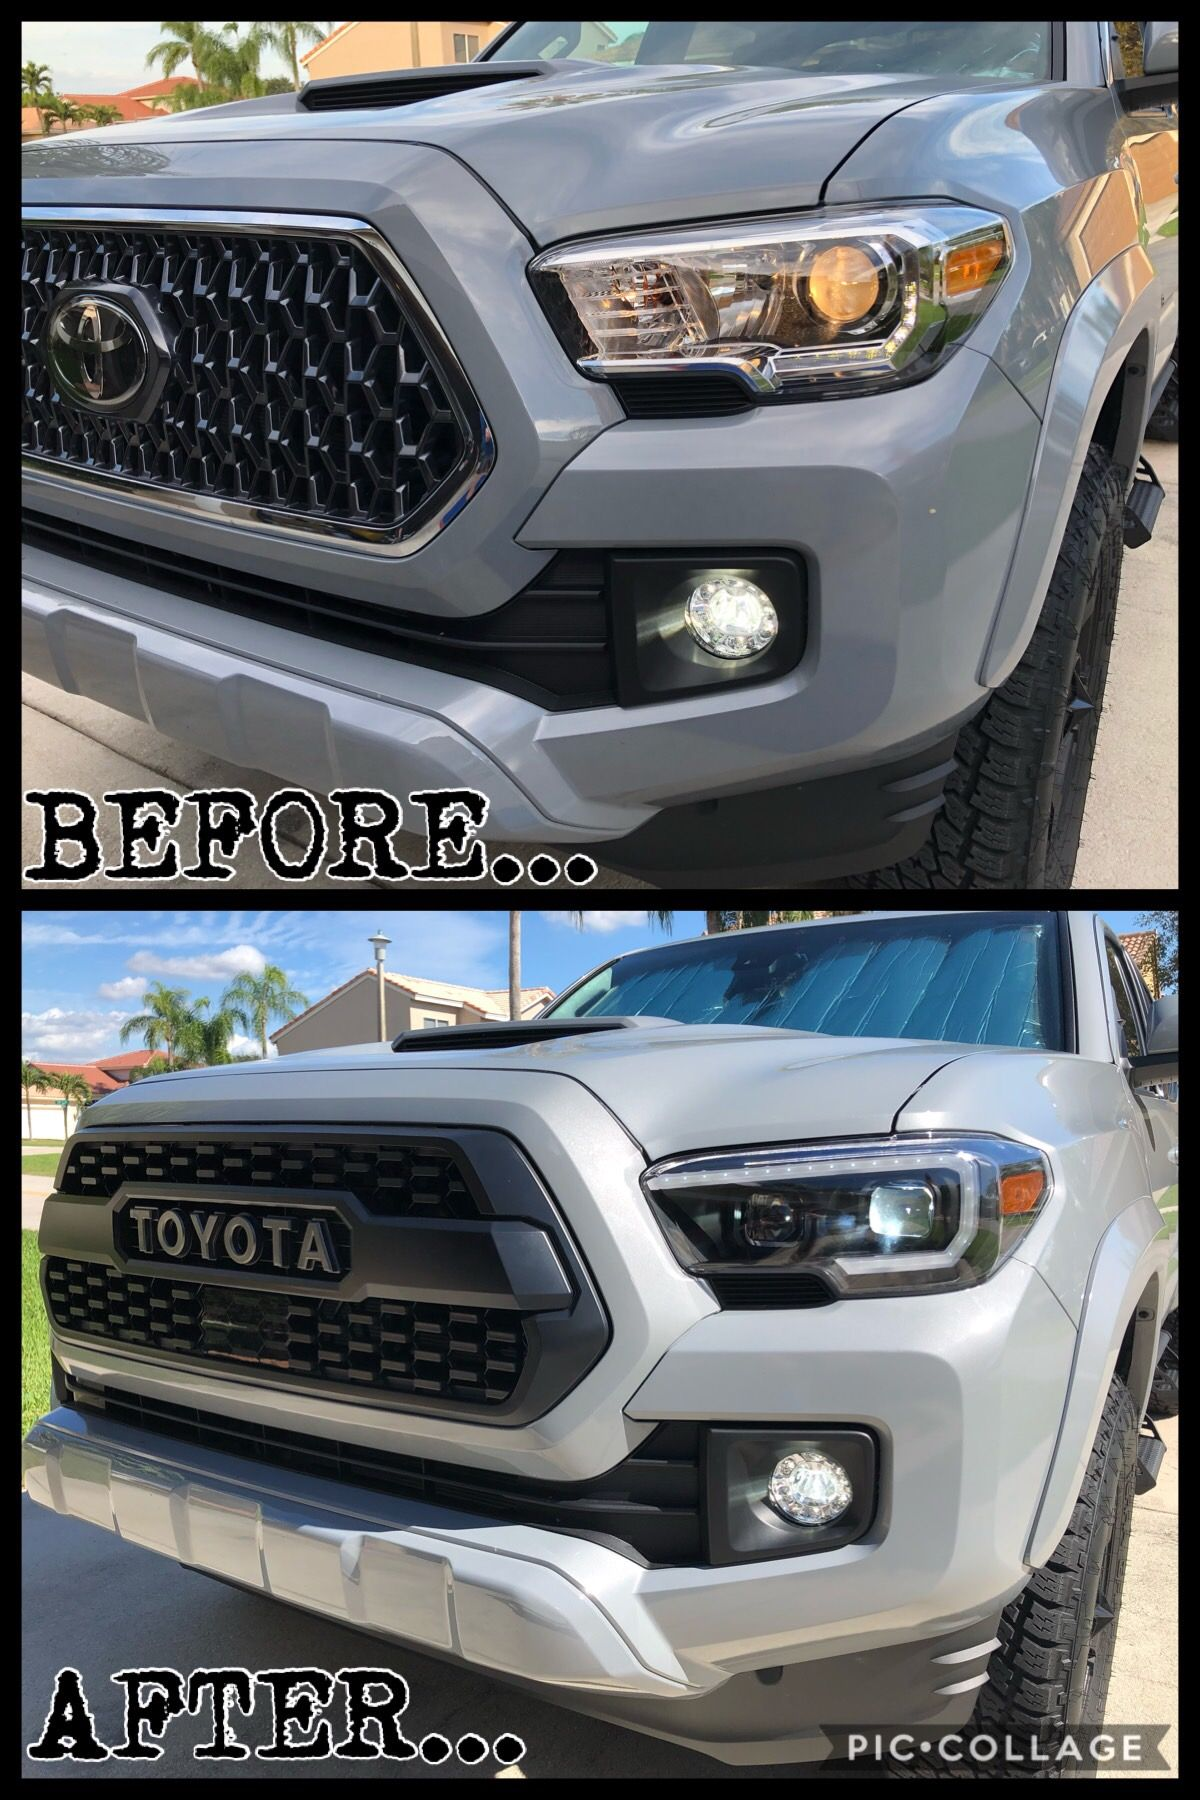 2019 lights and grille changed. Toyota